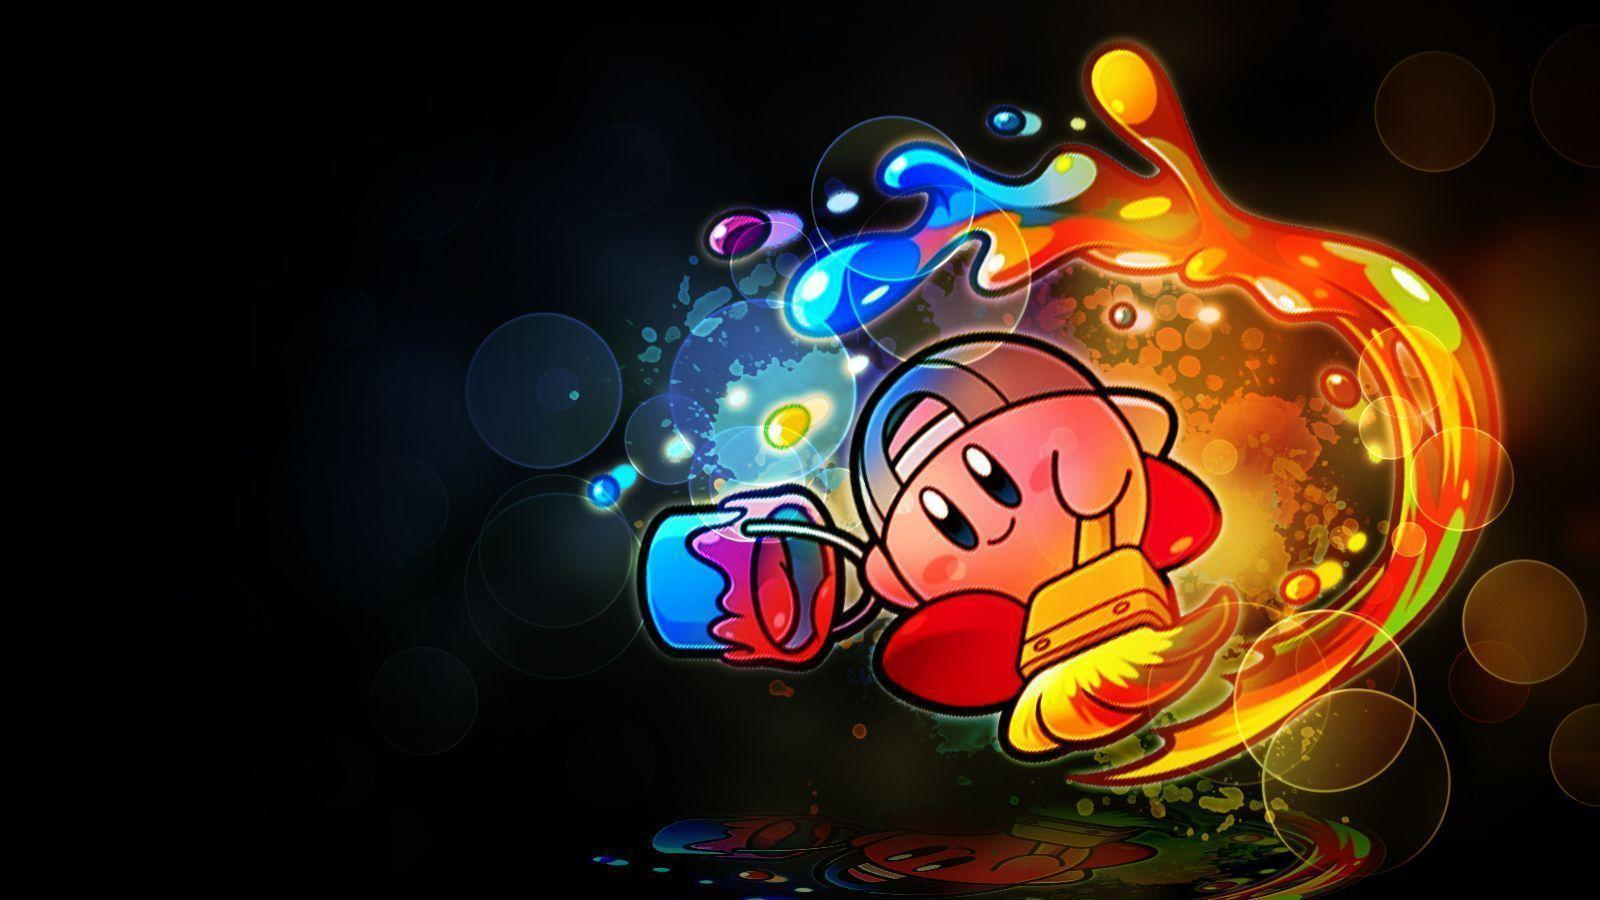 Kirby HD Wallpapers and Background Images   stmednet 1600x900